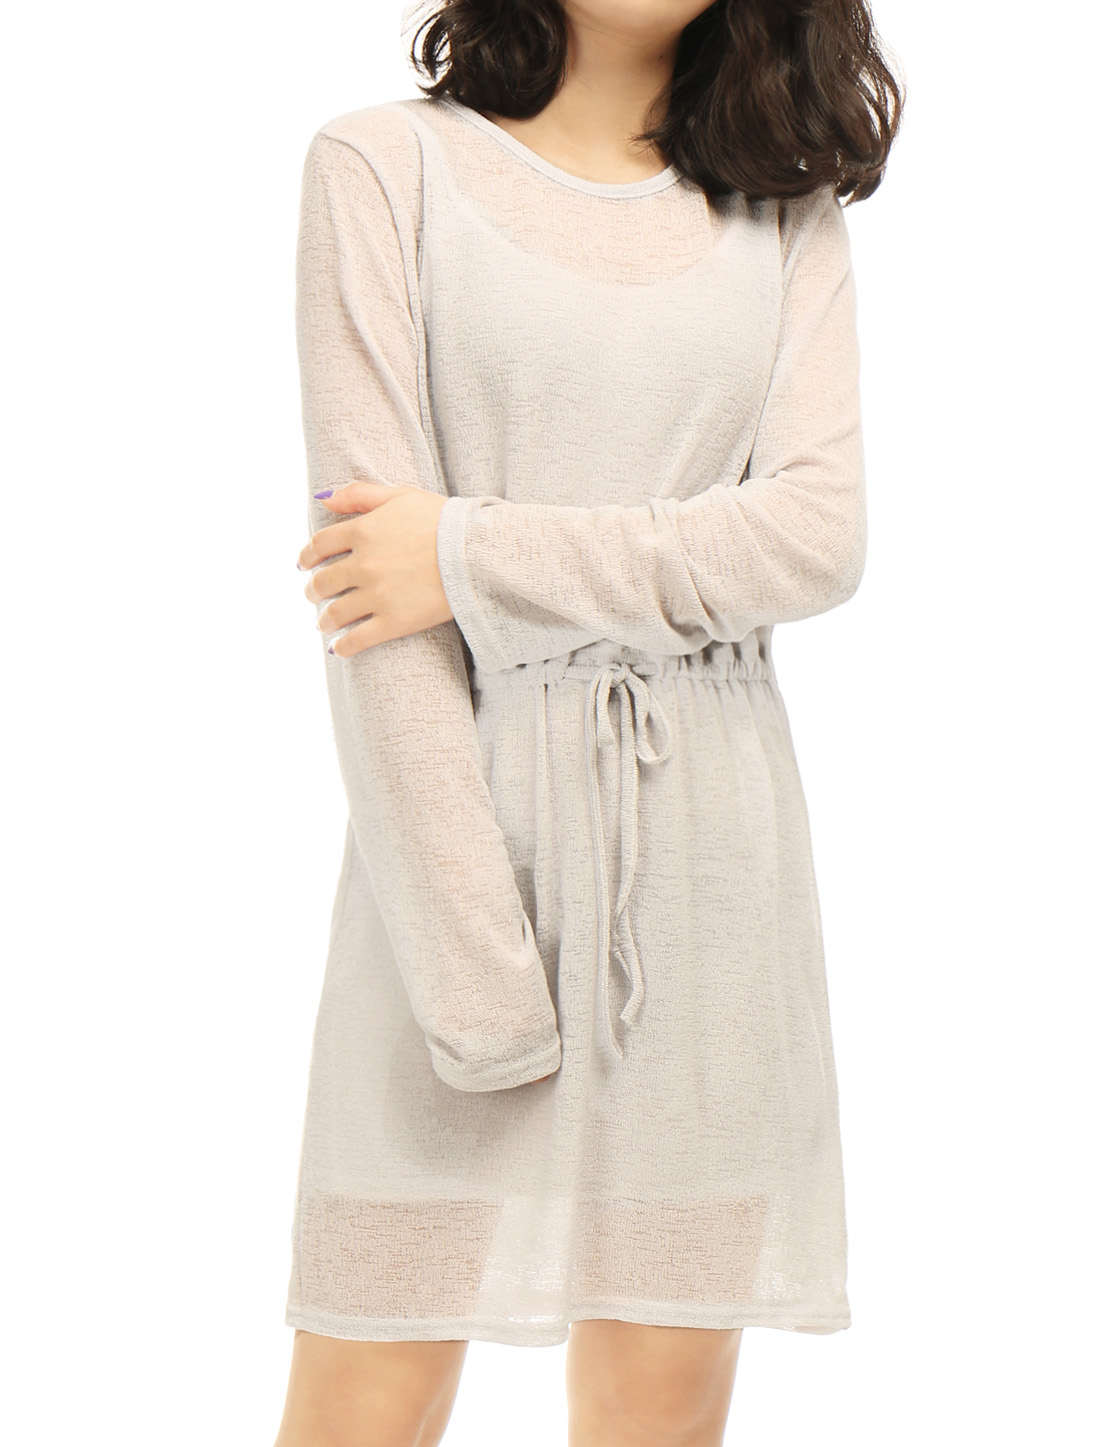 Women Long Sleeves Keyhole Back Semi Sheer Tunic Knitted Dress Gray XS